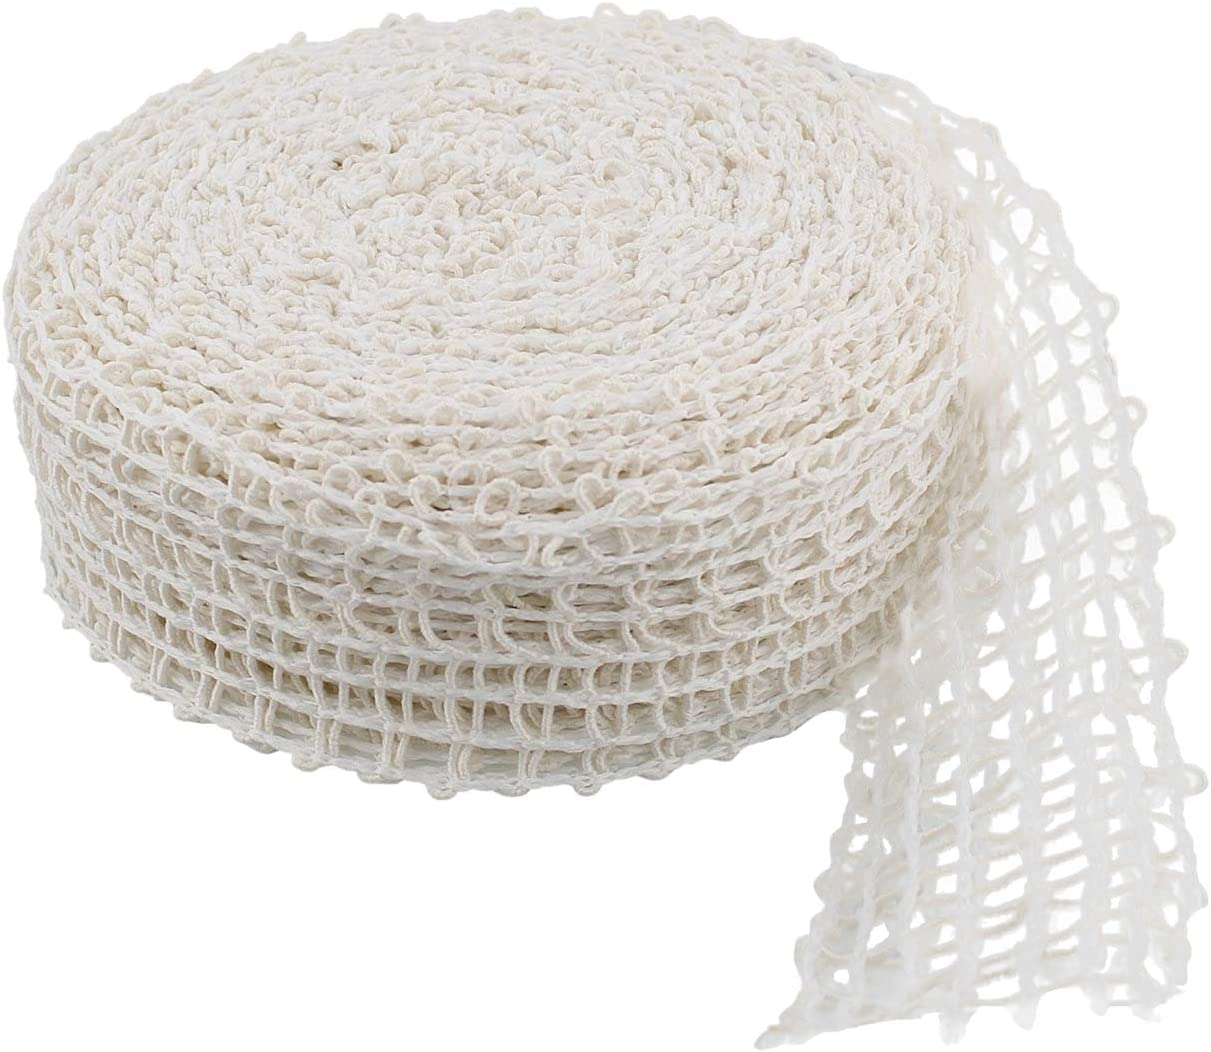 Rural365 Meat Netting Roll, Size 12 - Ham Sock Elastic Netting Meat Butcher Twine Net Meat Netting Roll Meat, 50ft Roll